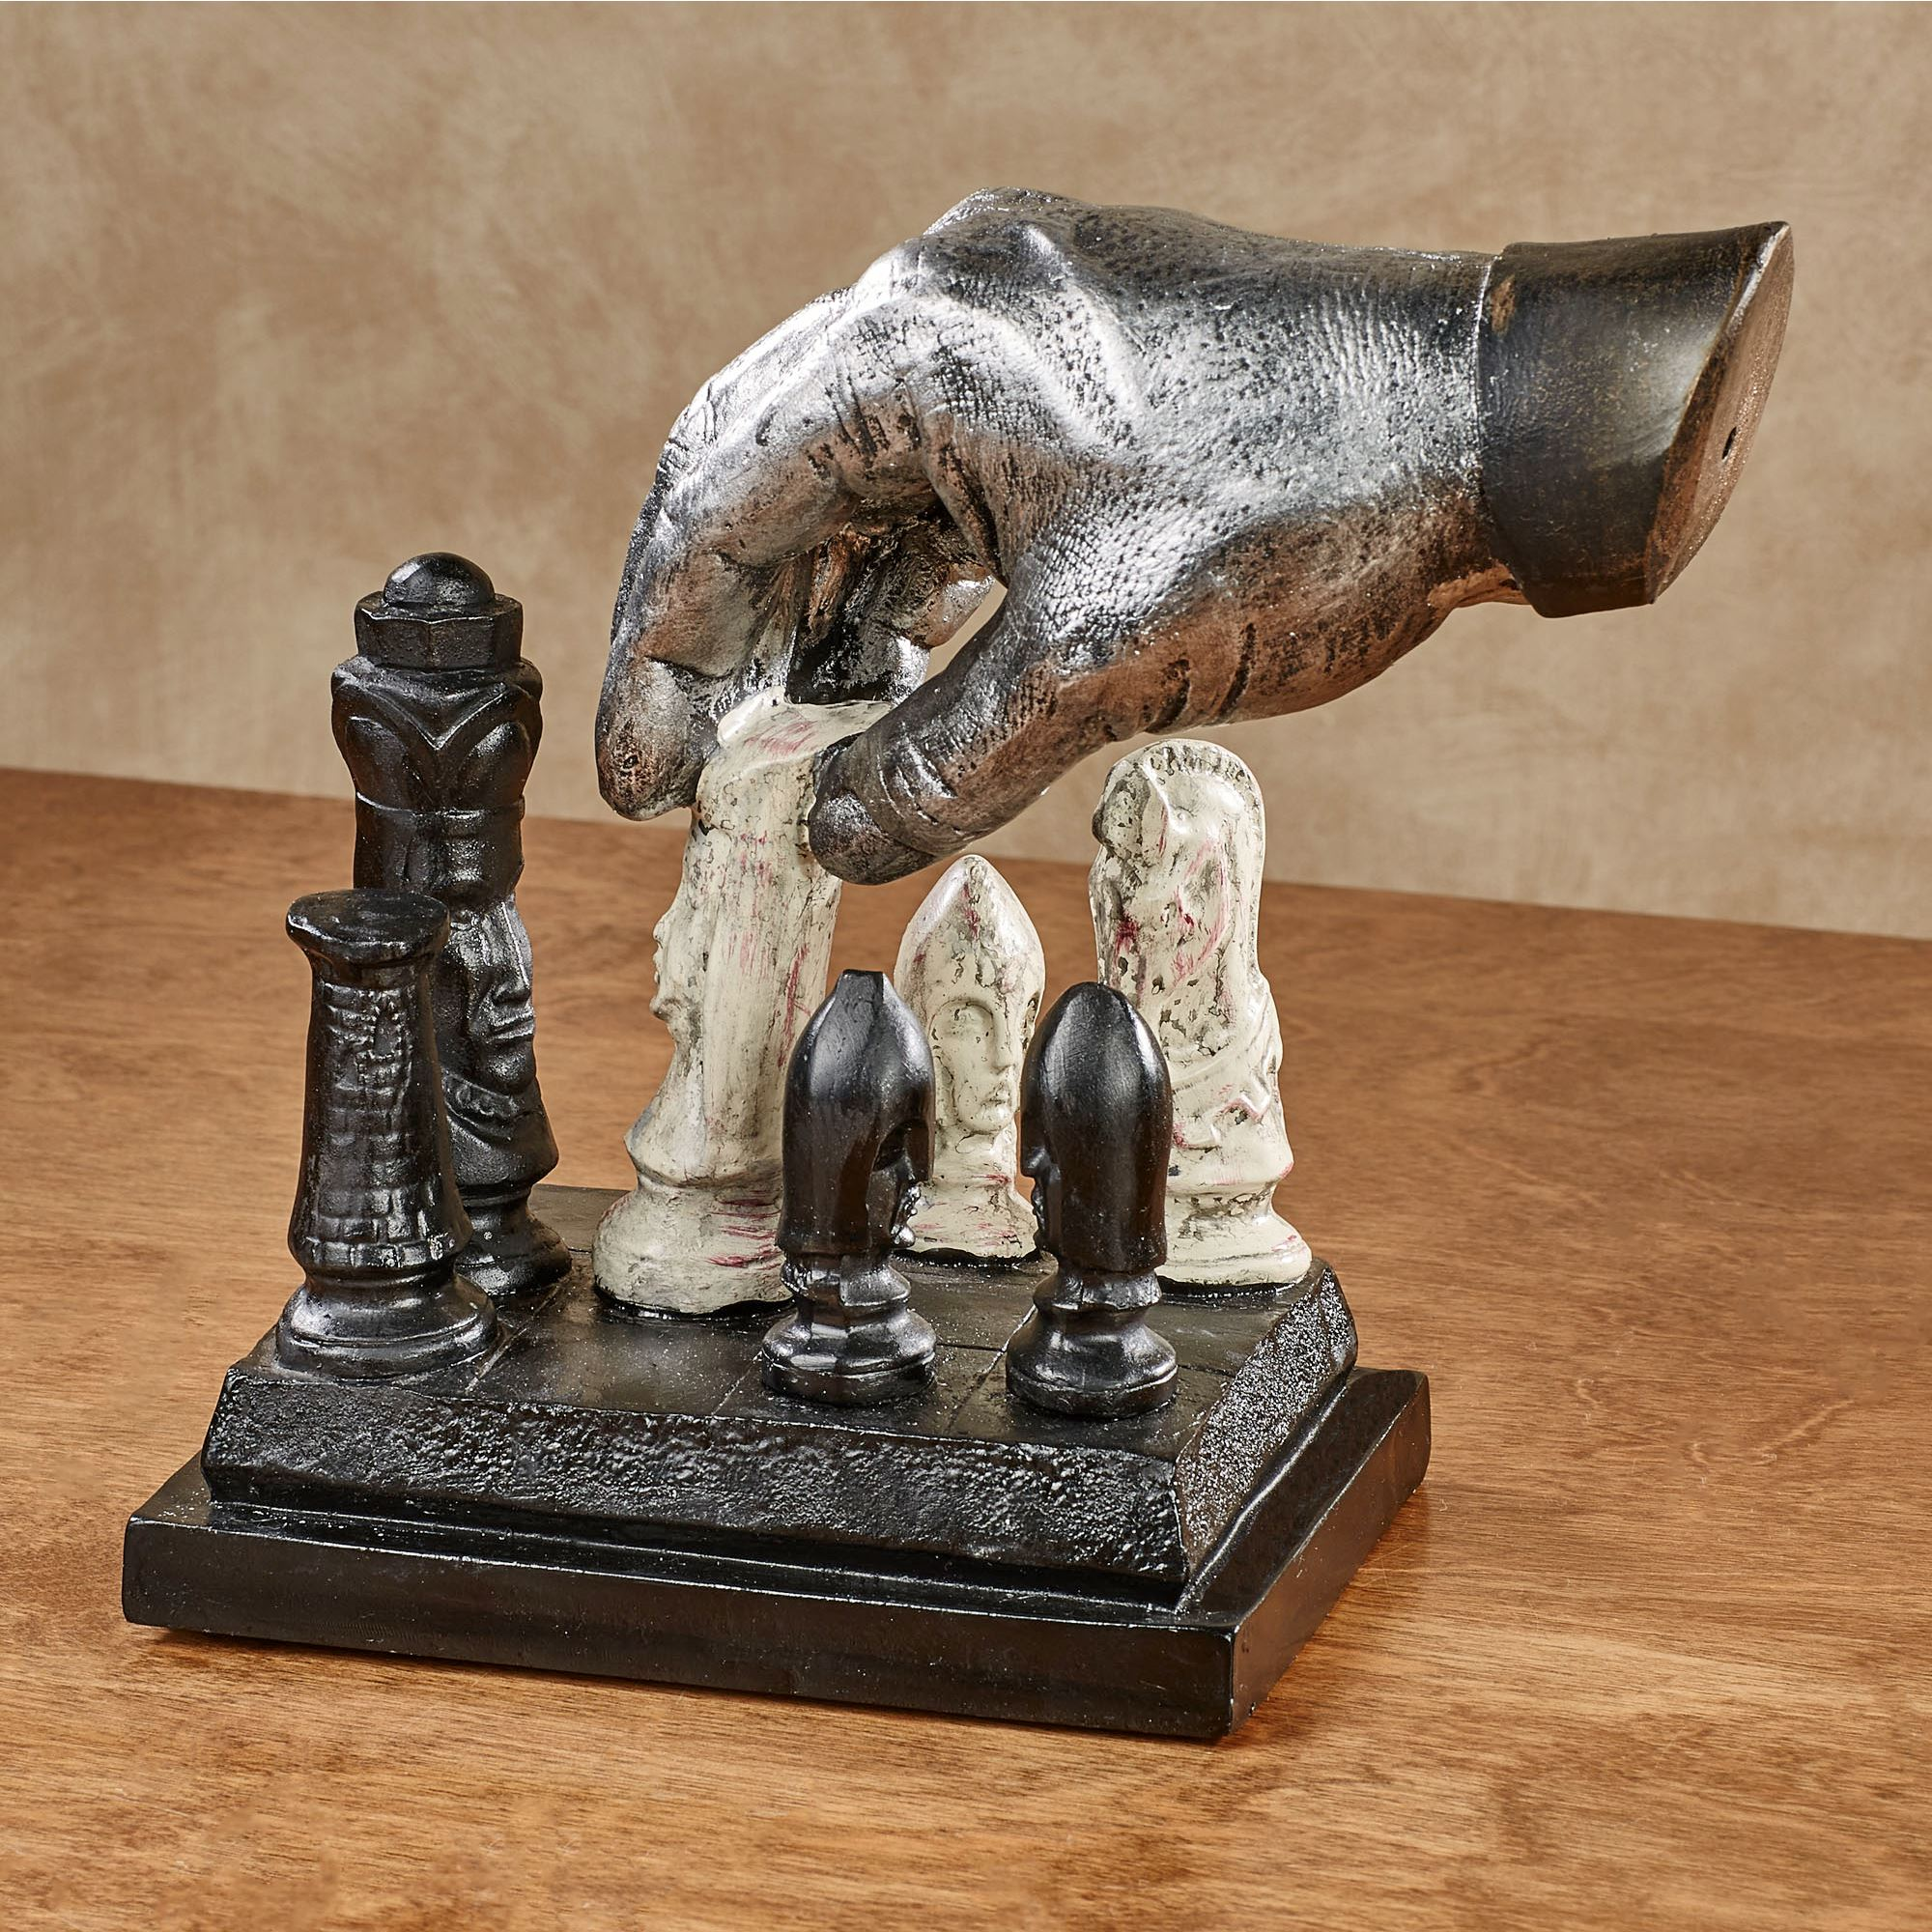 Checkmate chess player hand table sculpture